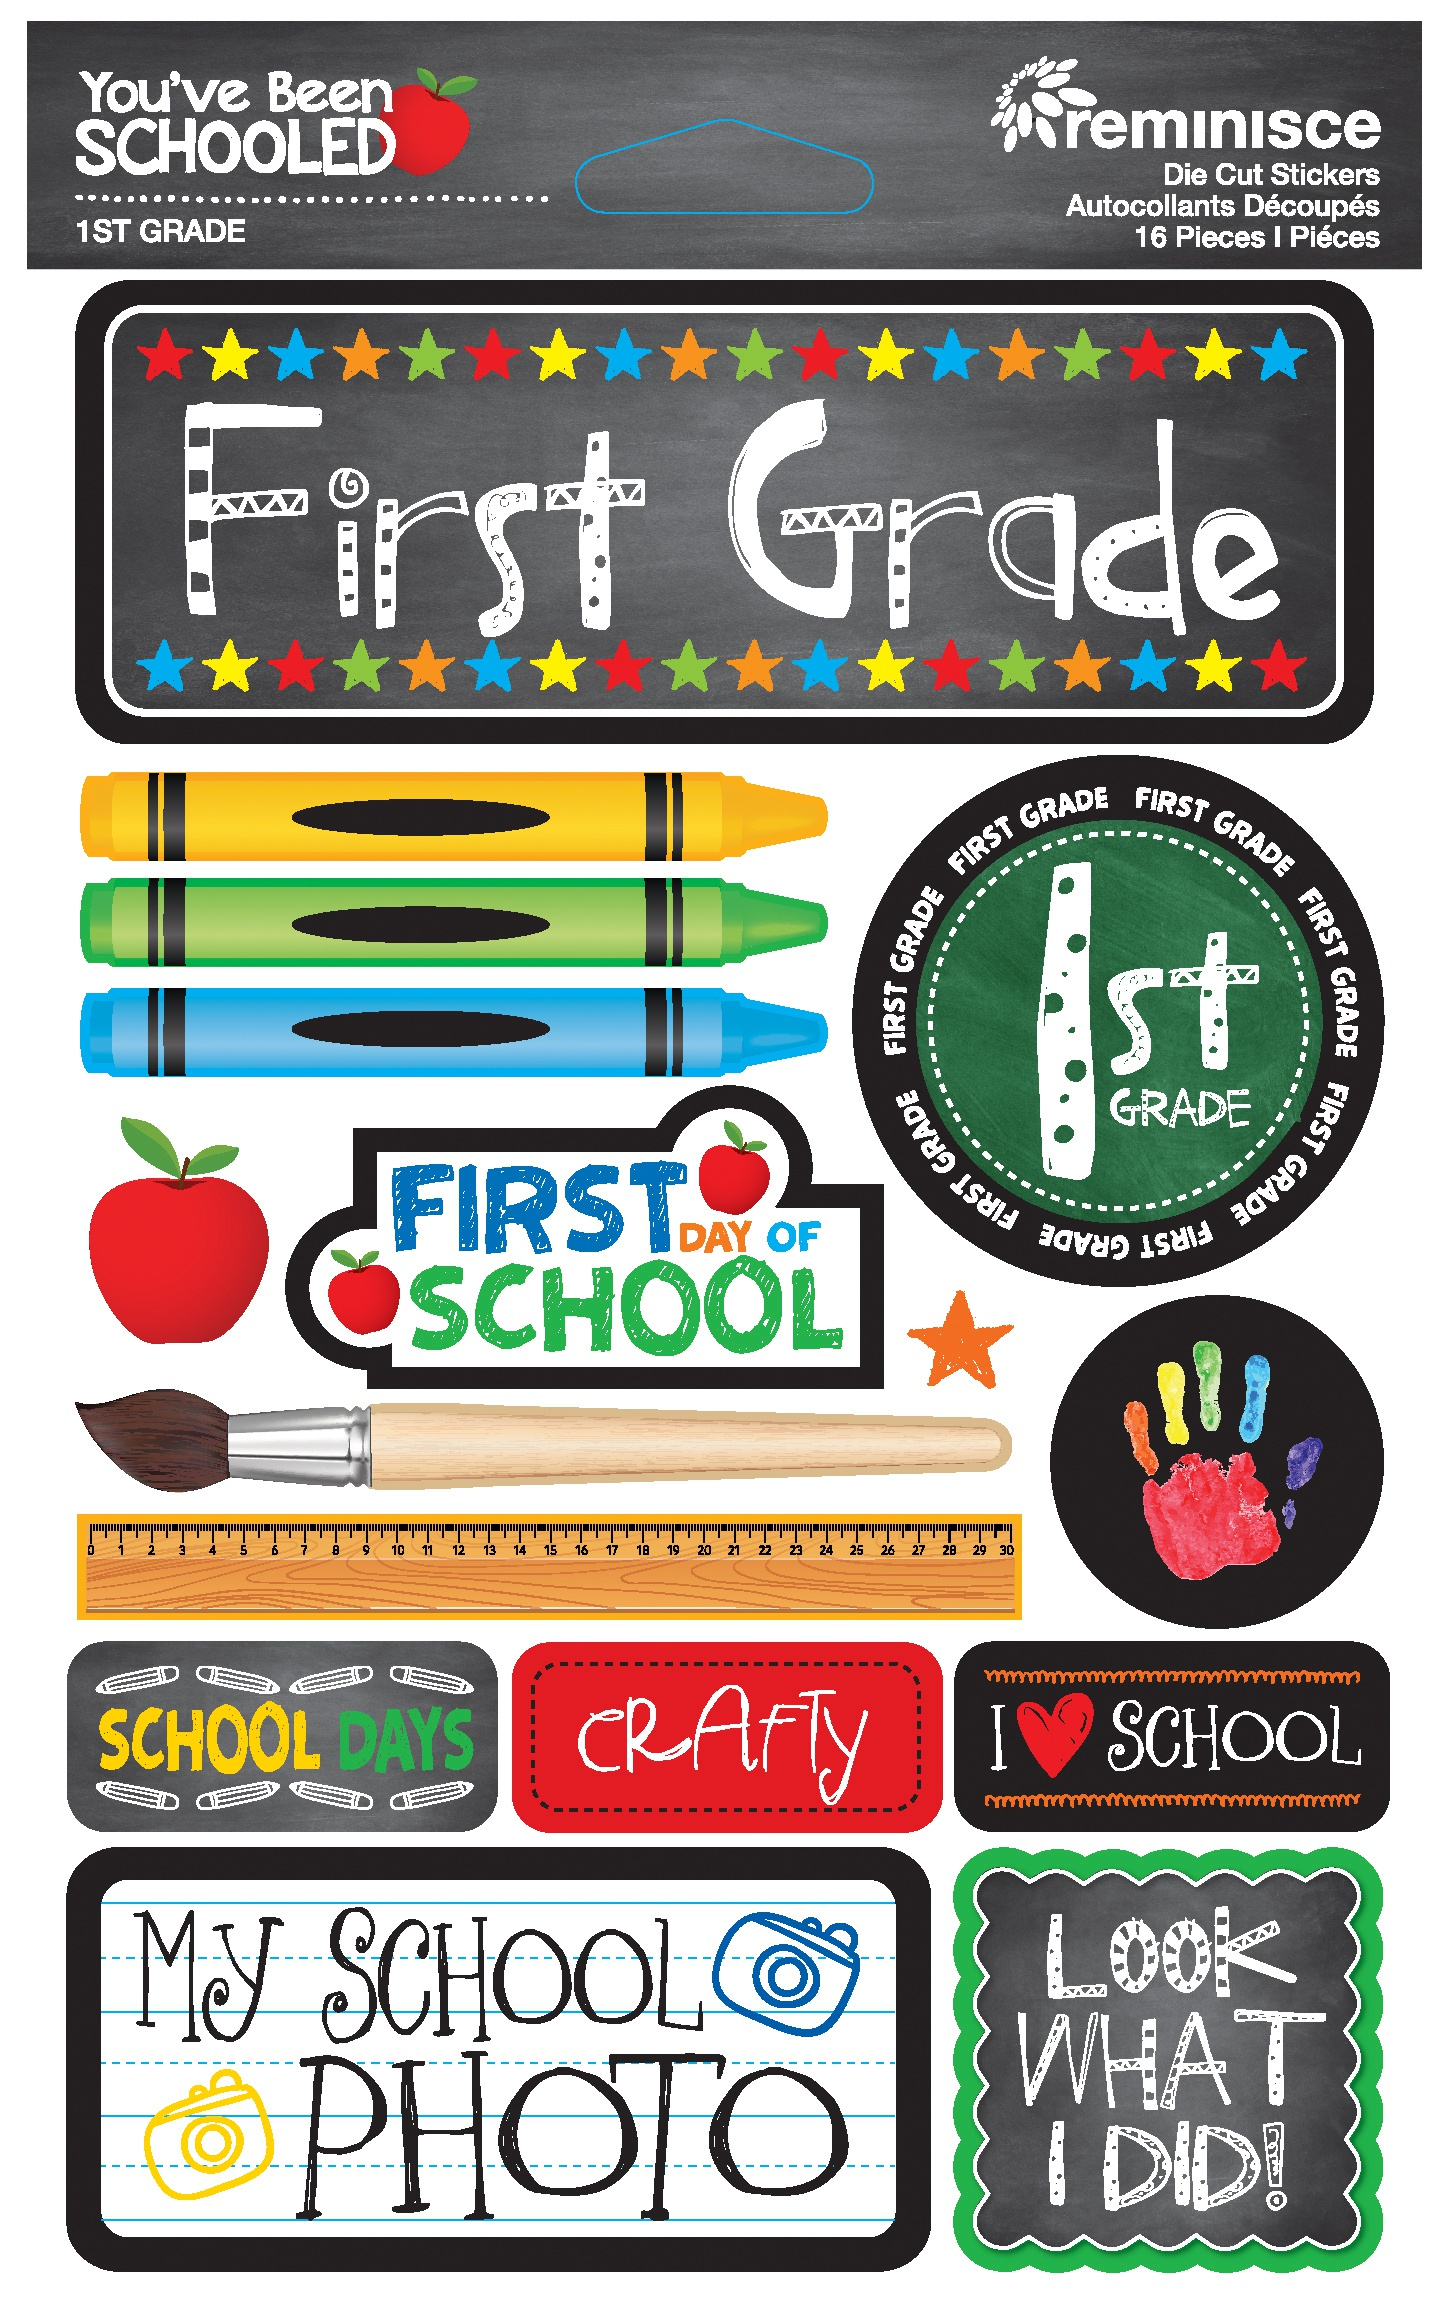 Reminisce You've Been Schooled -  1st Grade 3D Dimensional Stickers